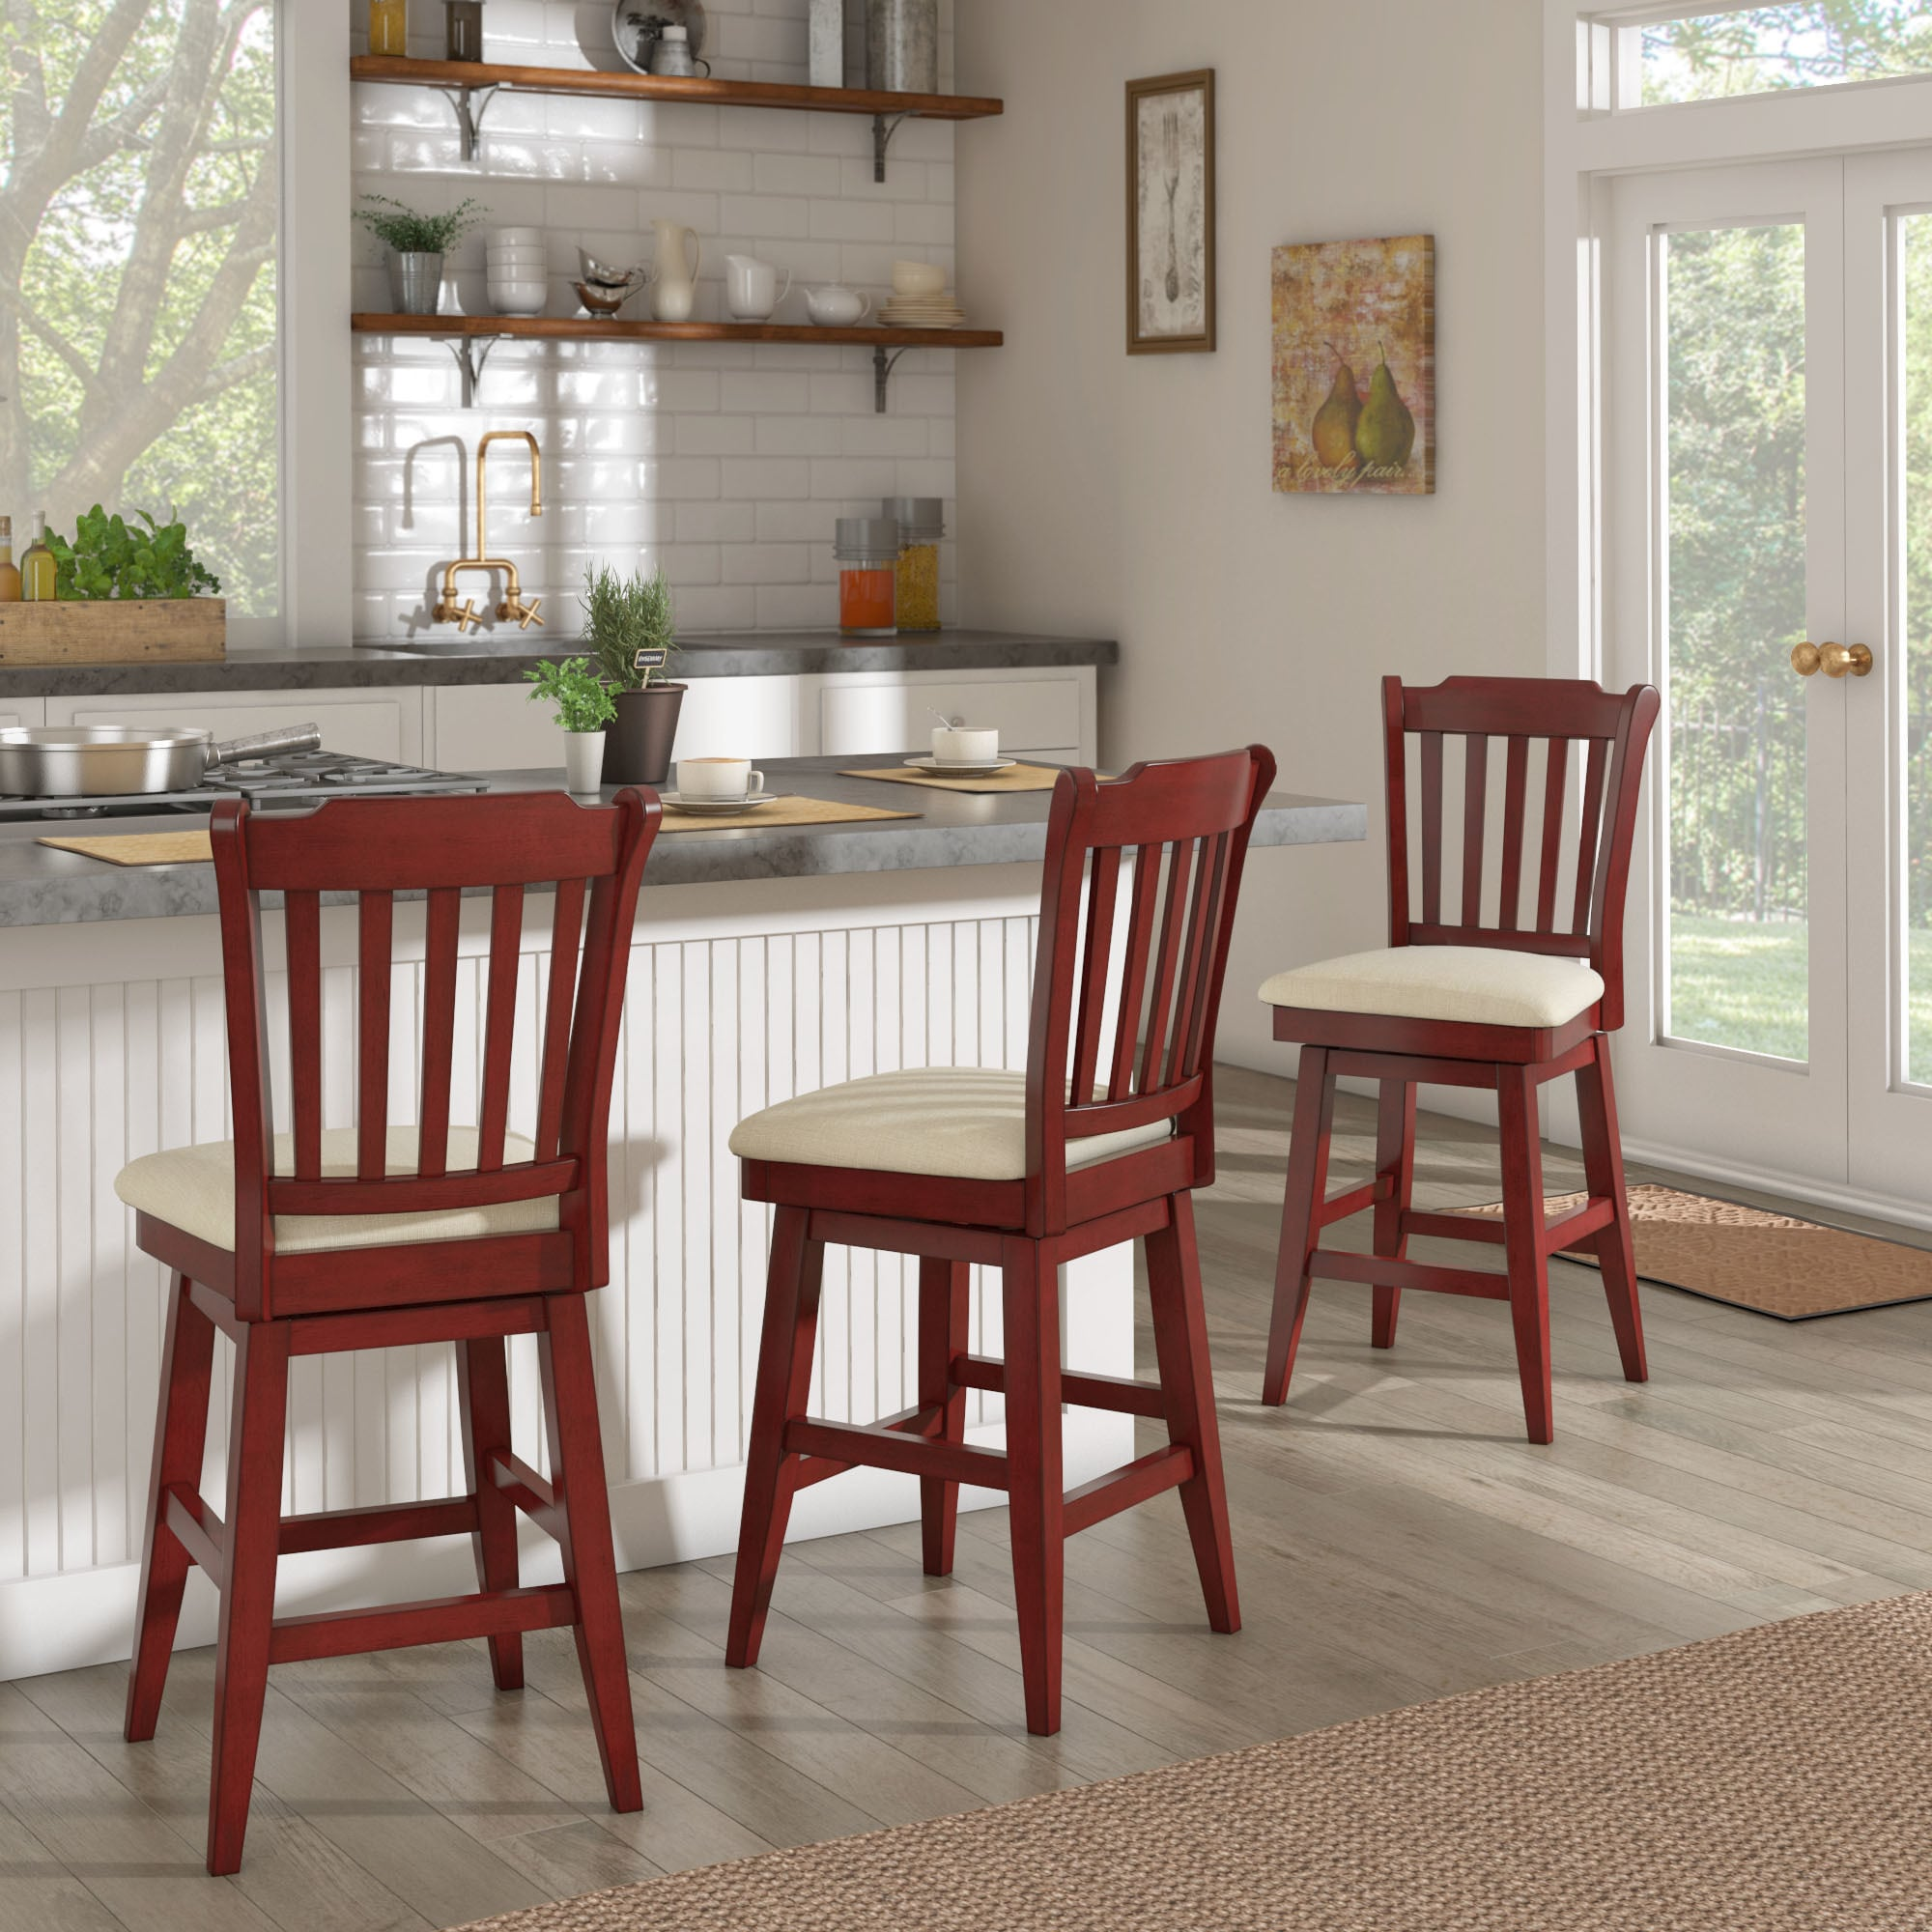 Eleanor Slat Back Counter Height Wood Swivel Chair By INSPIRE Q Classic